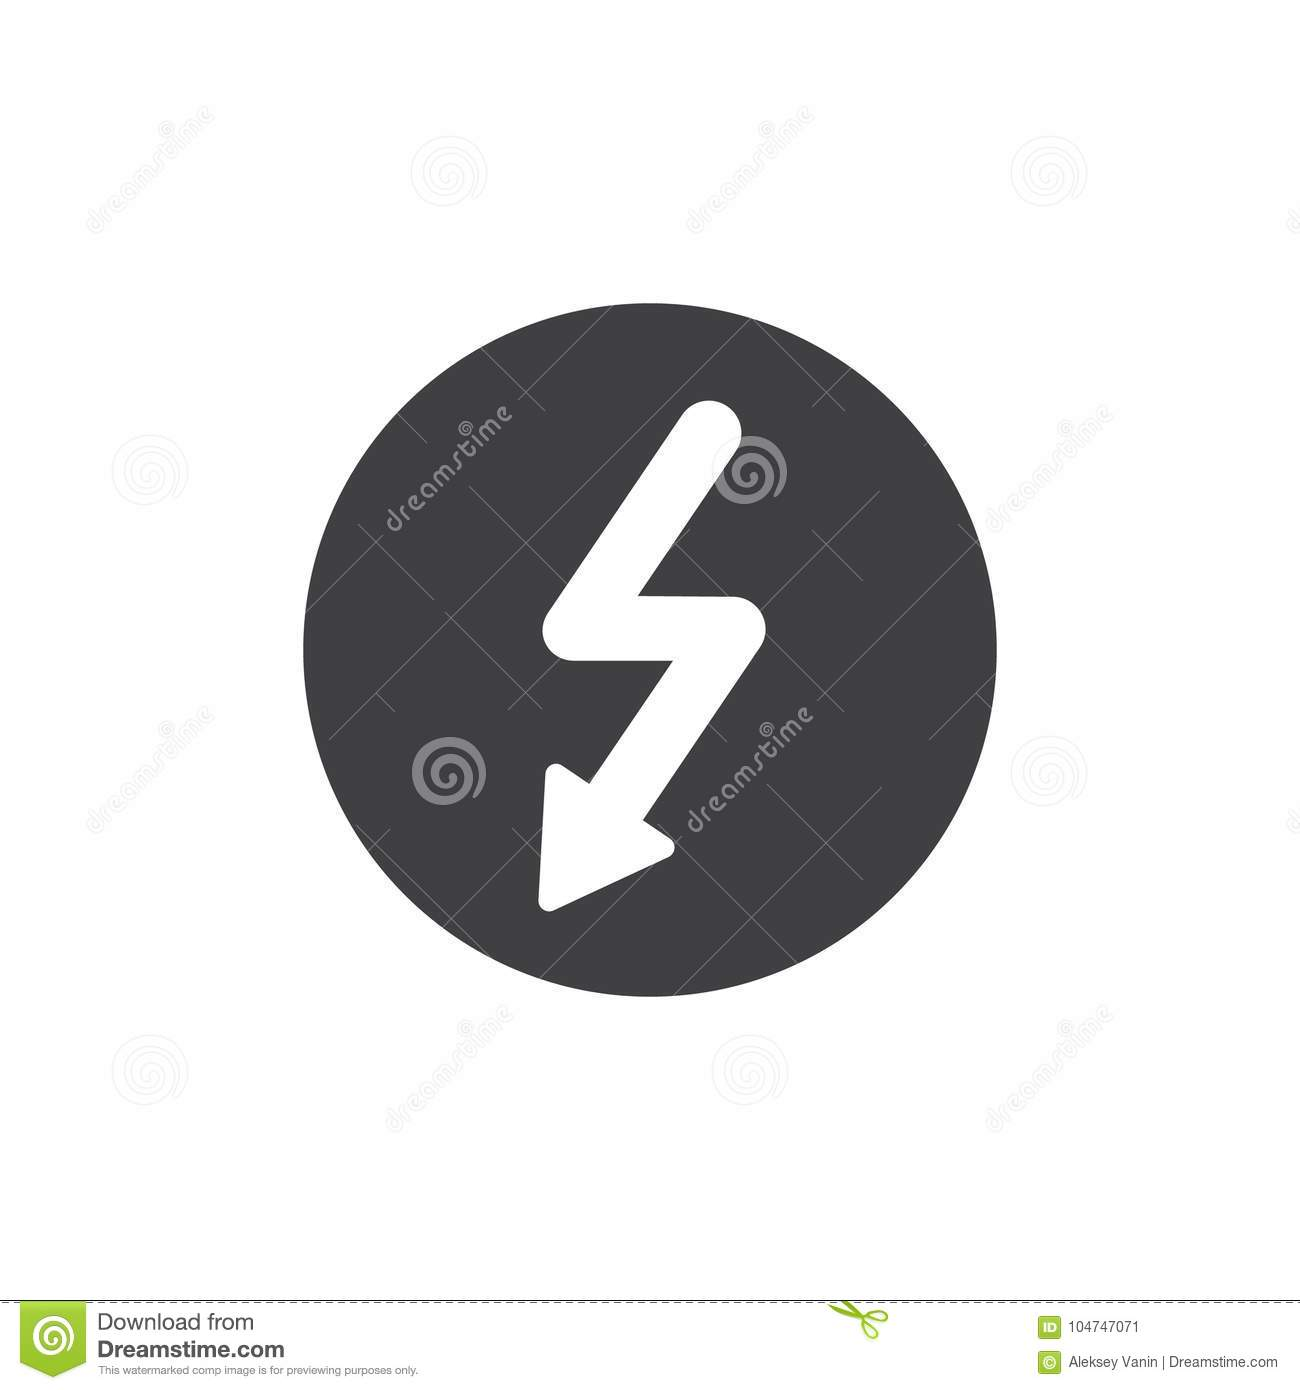 High voltage icon vector stock vector. Illustration of flash - 104747071